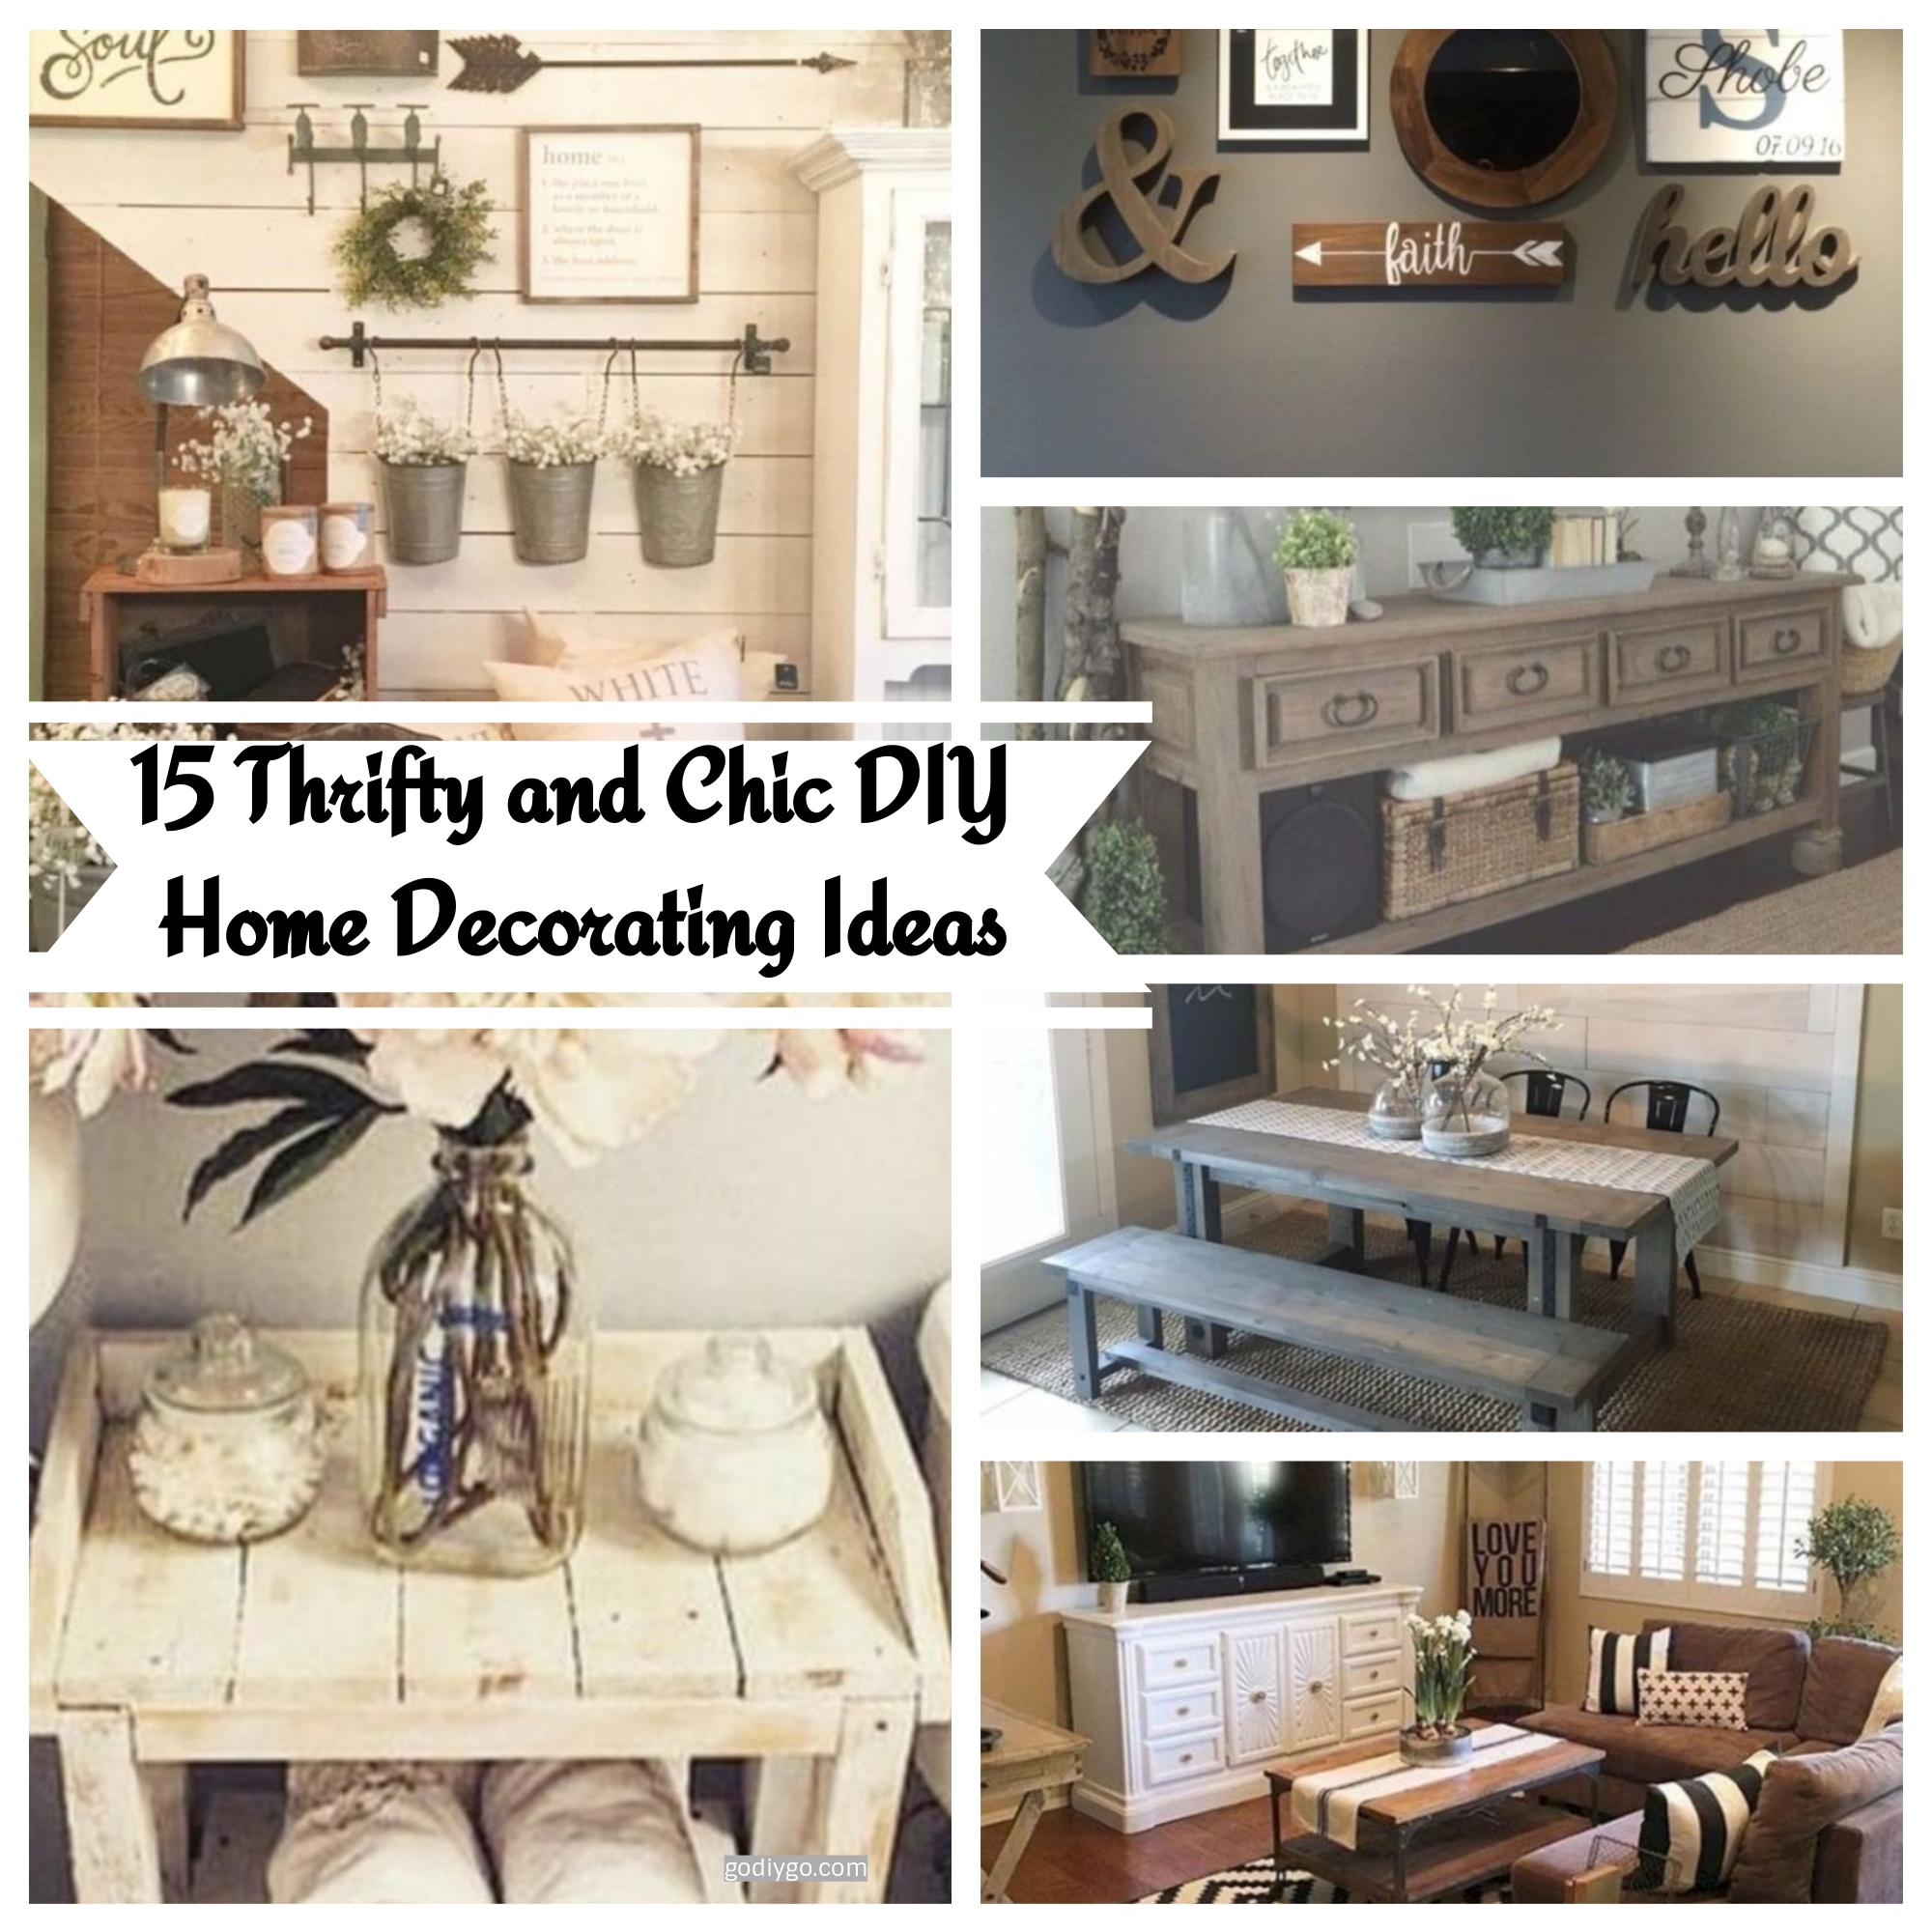 Homes Ideas: 15 Thrifty And Chic DIY Home Decorating Ideas